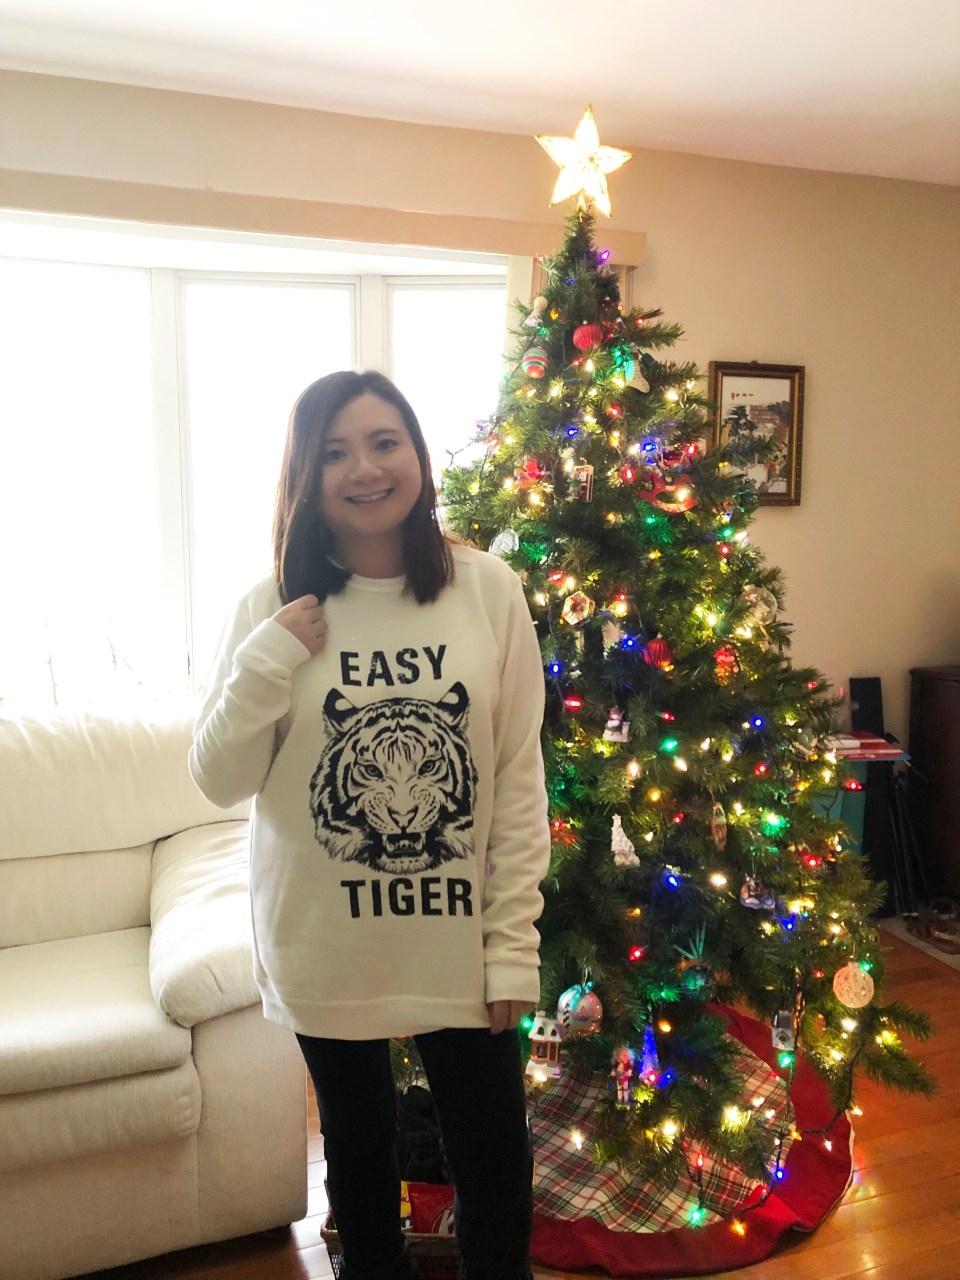 Easy Tiger Sweatshirt 5